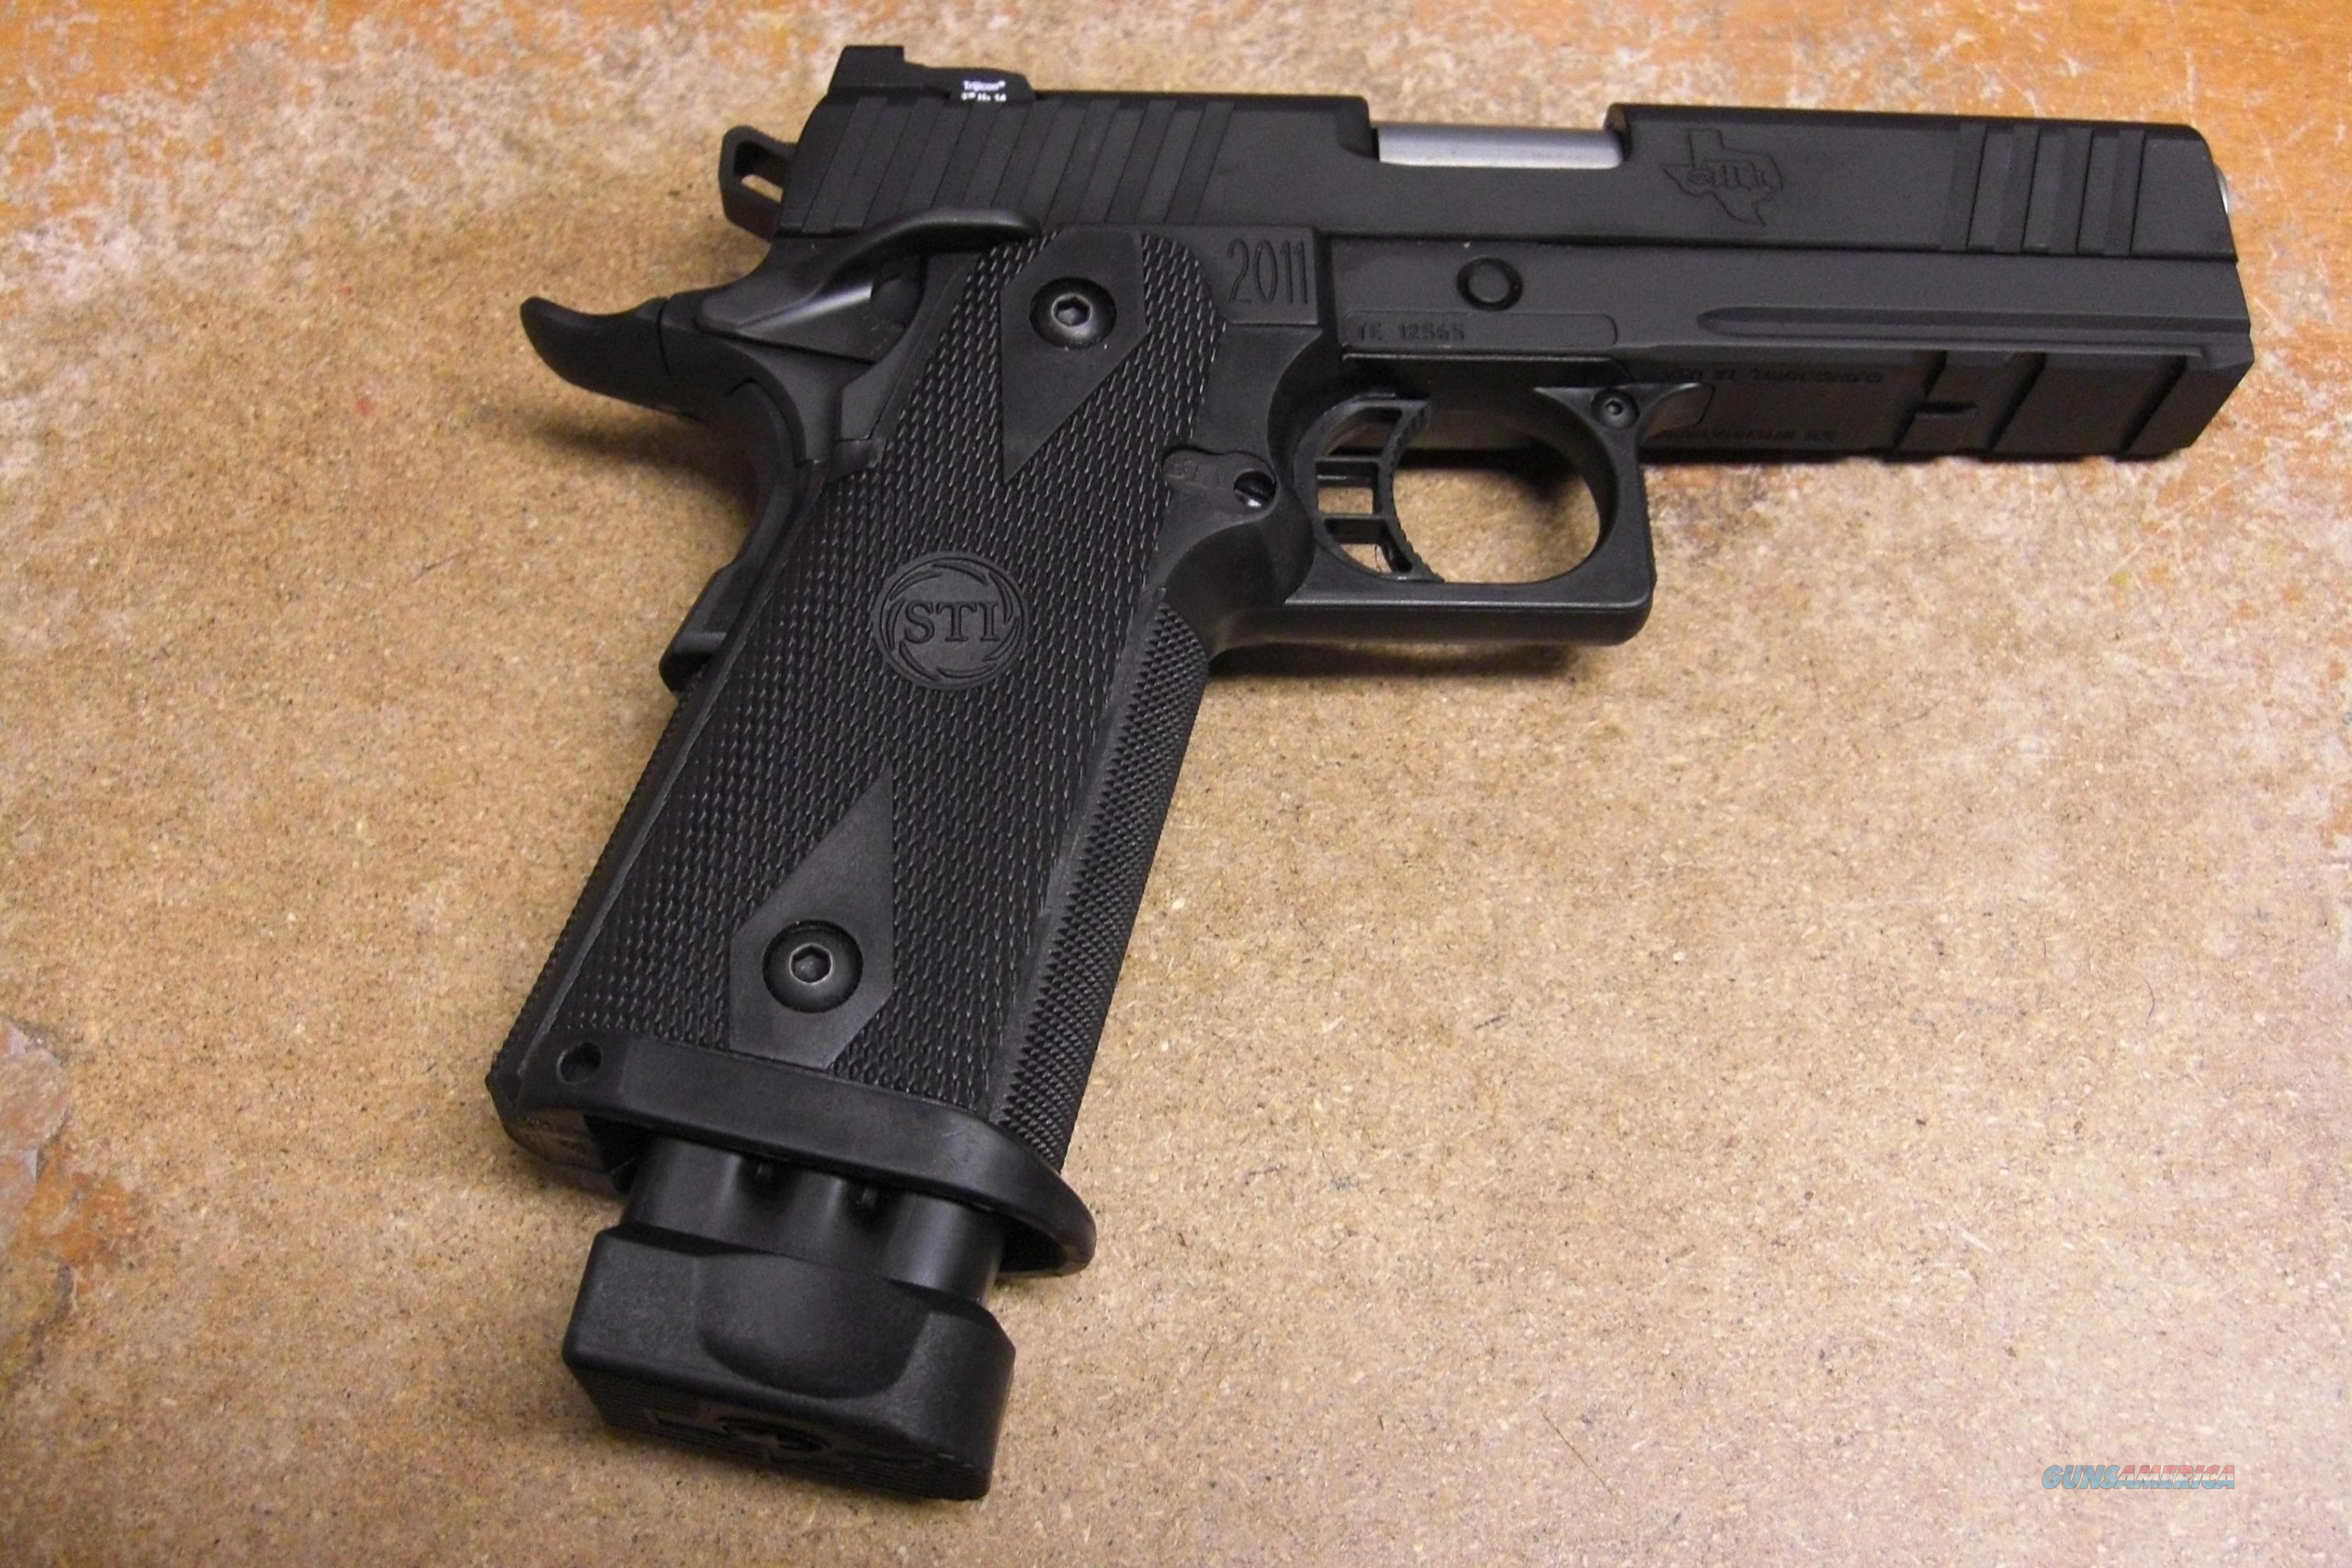 2011 Tactical 4.0  Guns > Pistols > STI Pistols